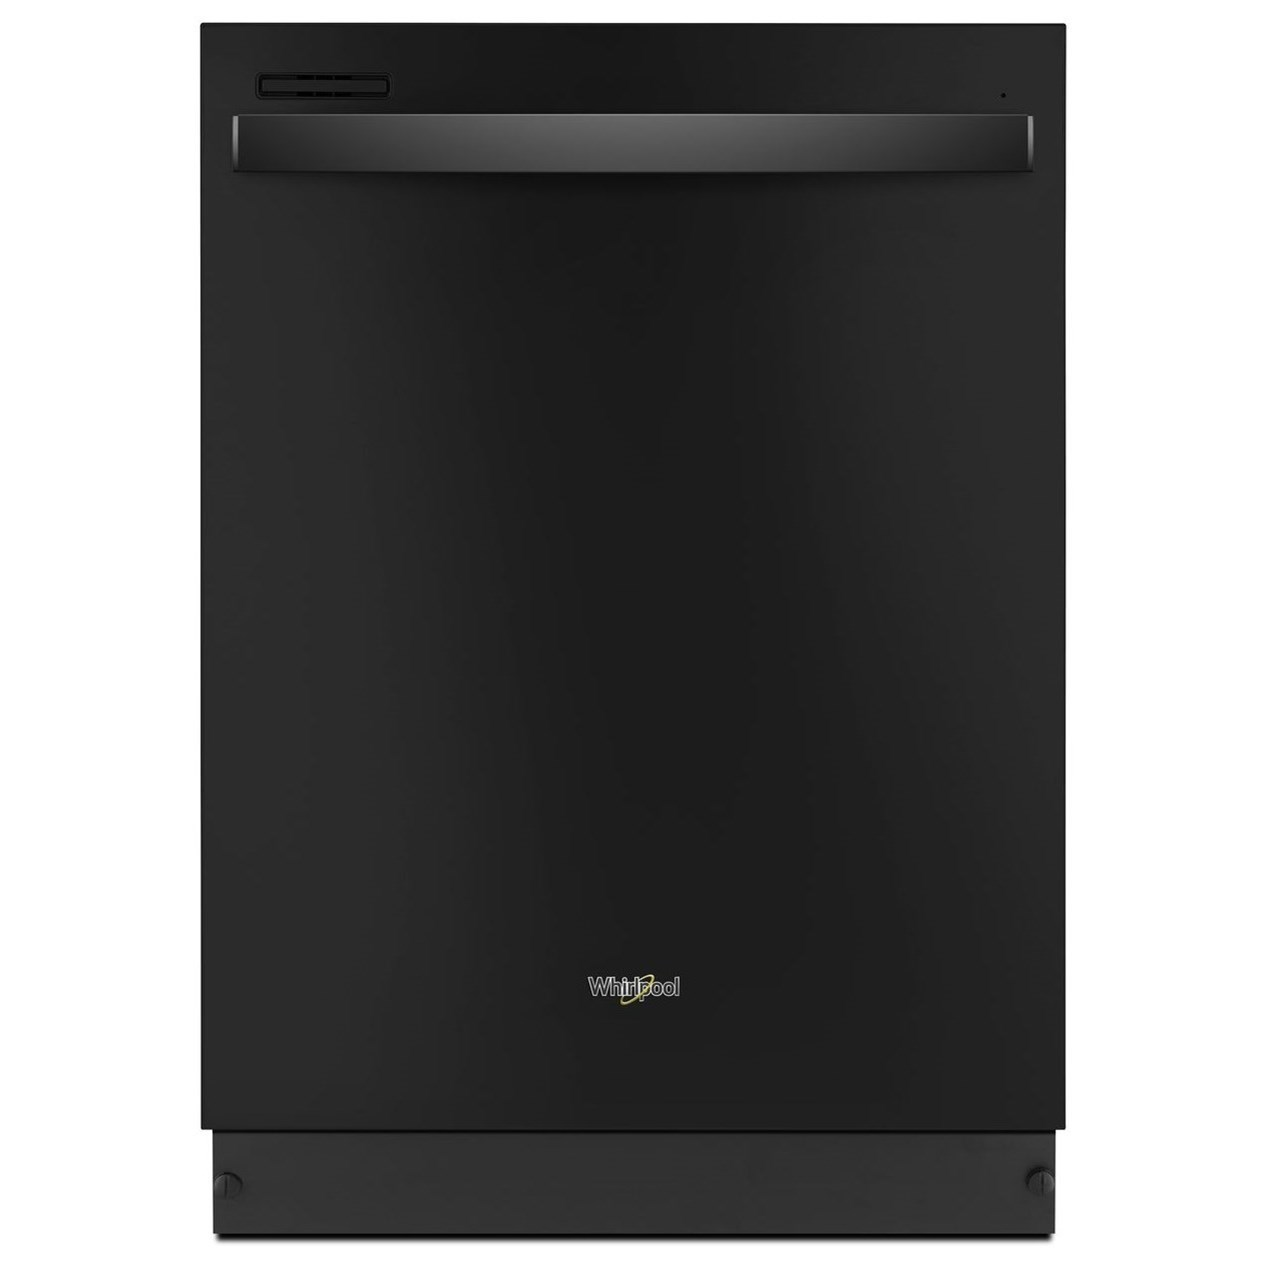 Dishwashers - Whirlpool Dishwasher with Sensor Cycle by Whirlpool at Furniture and ApplianceMart